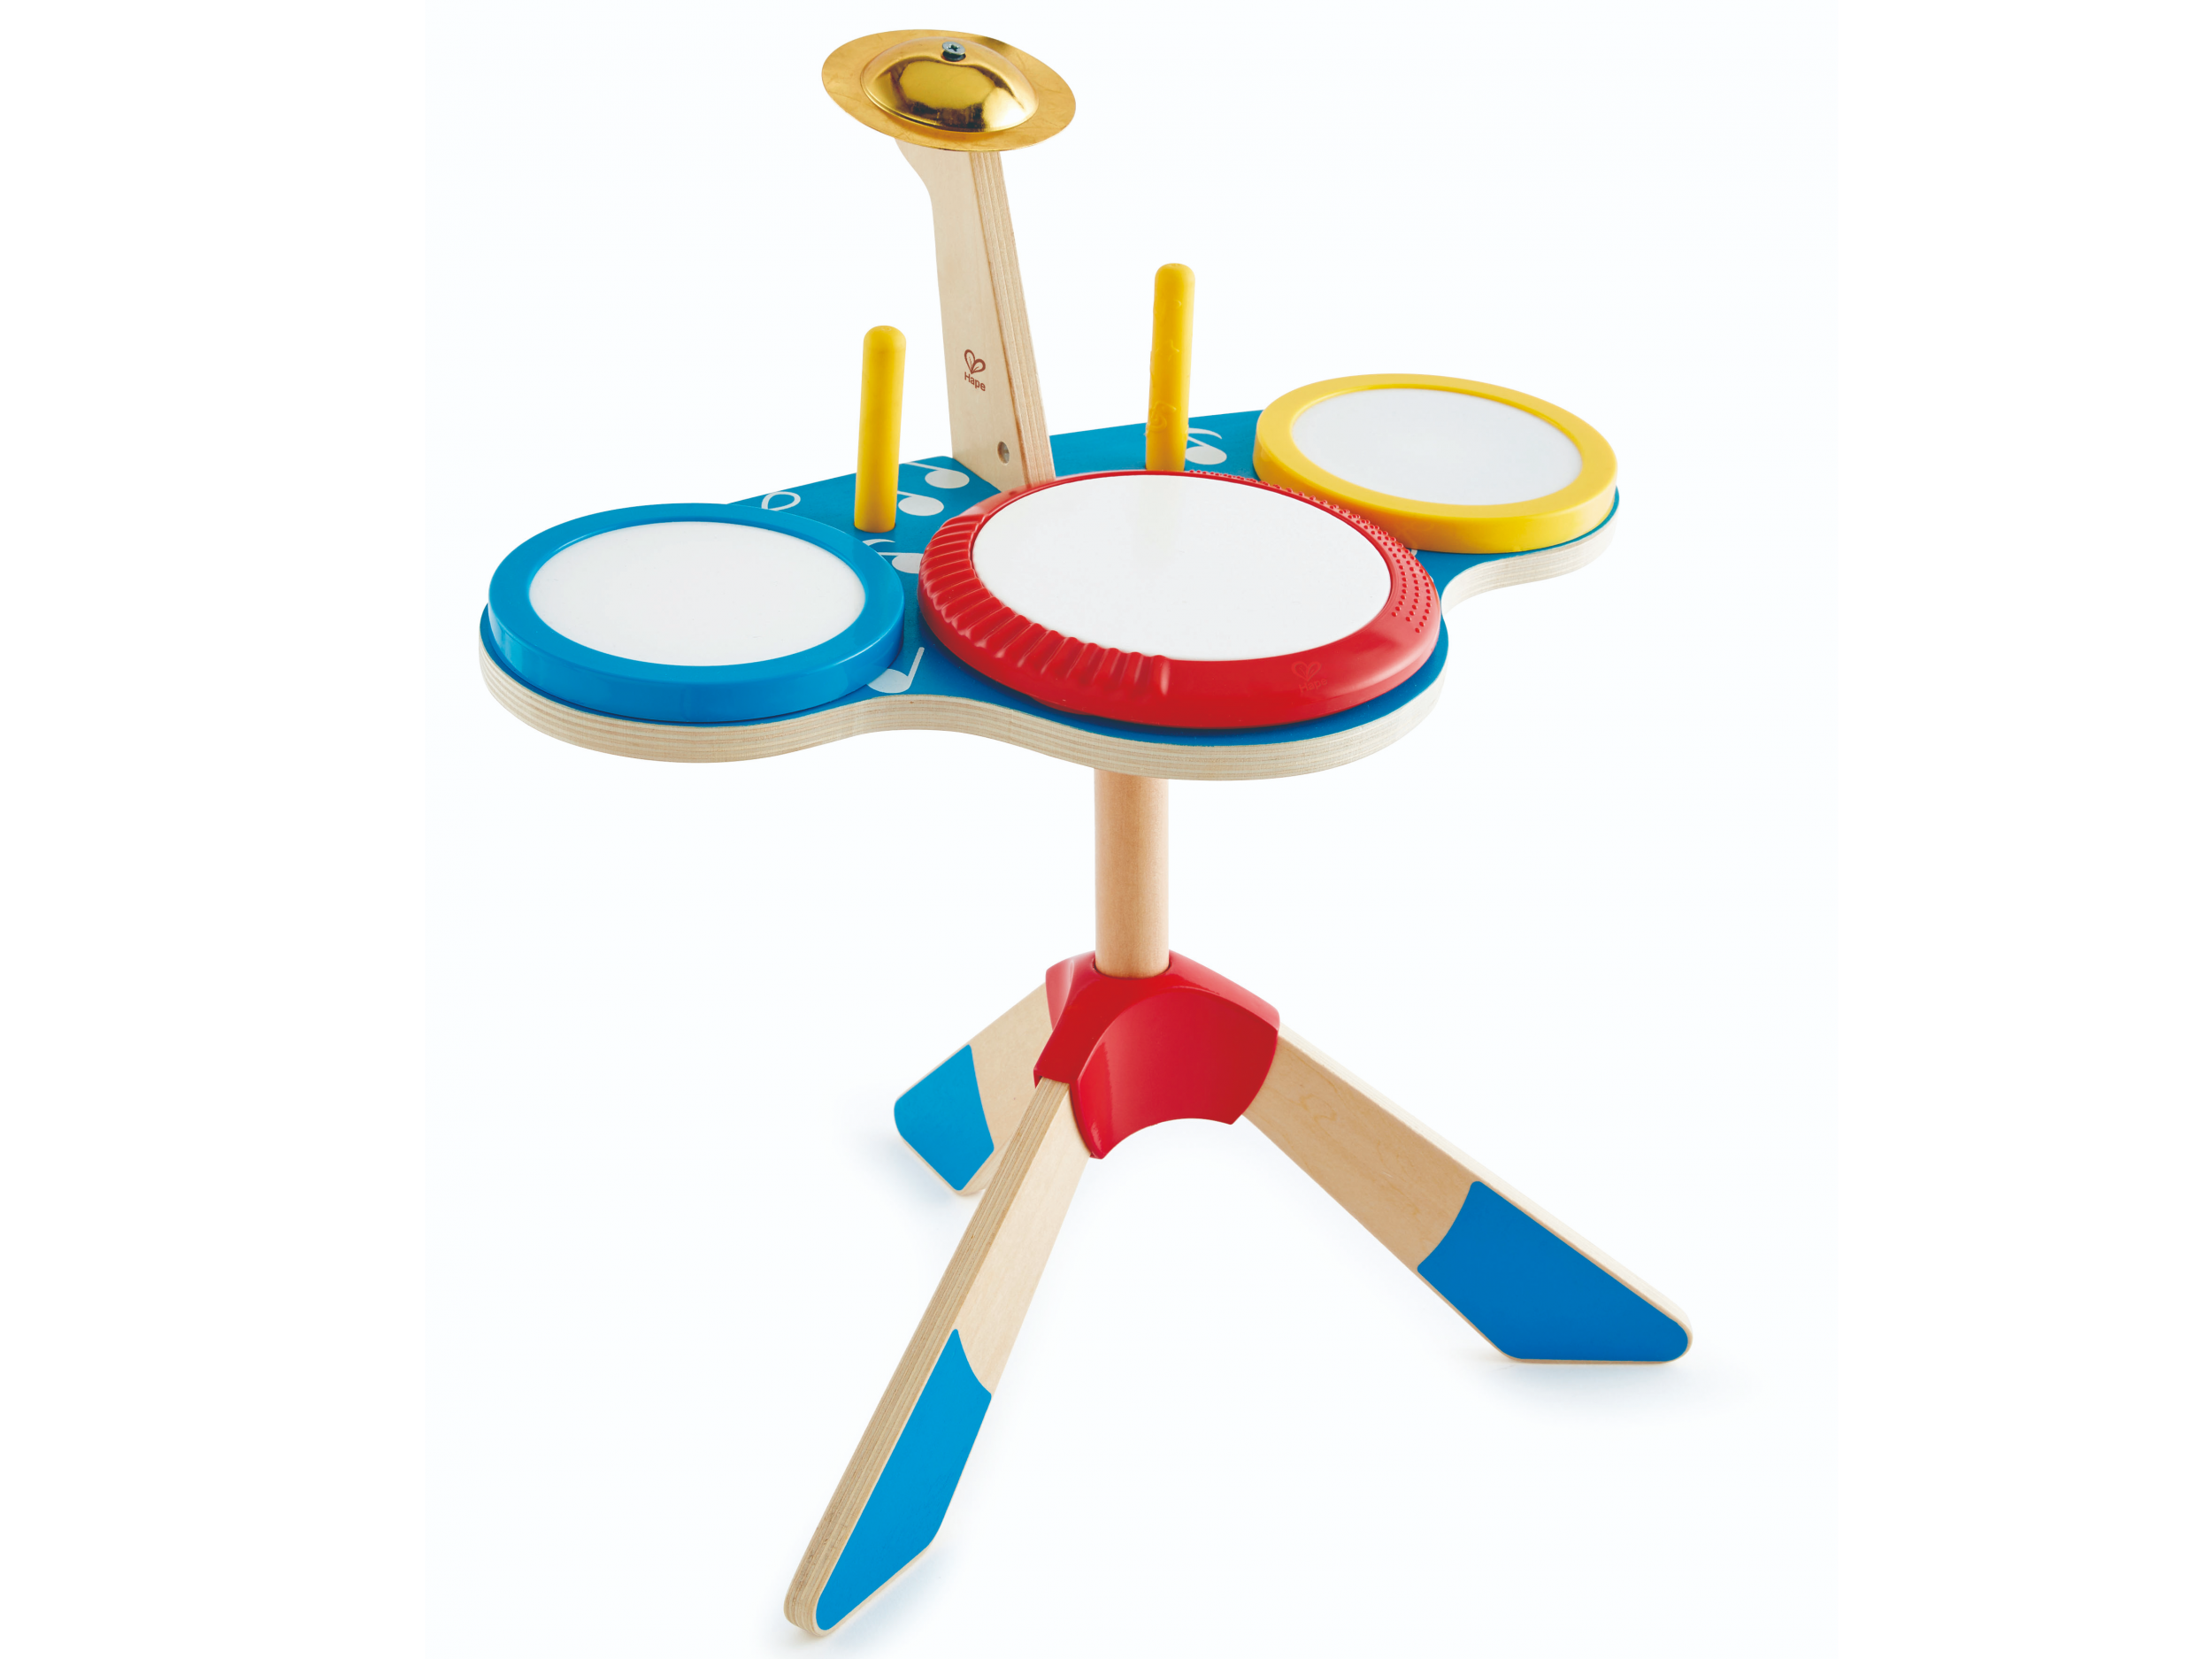 Best musical toys for babies, toddlers and older kids that